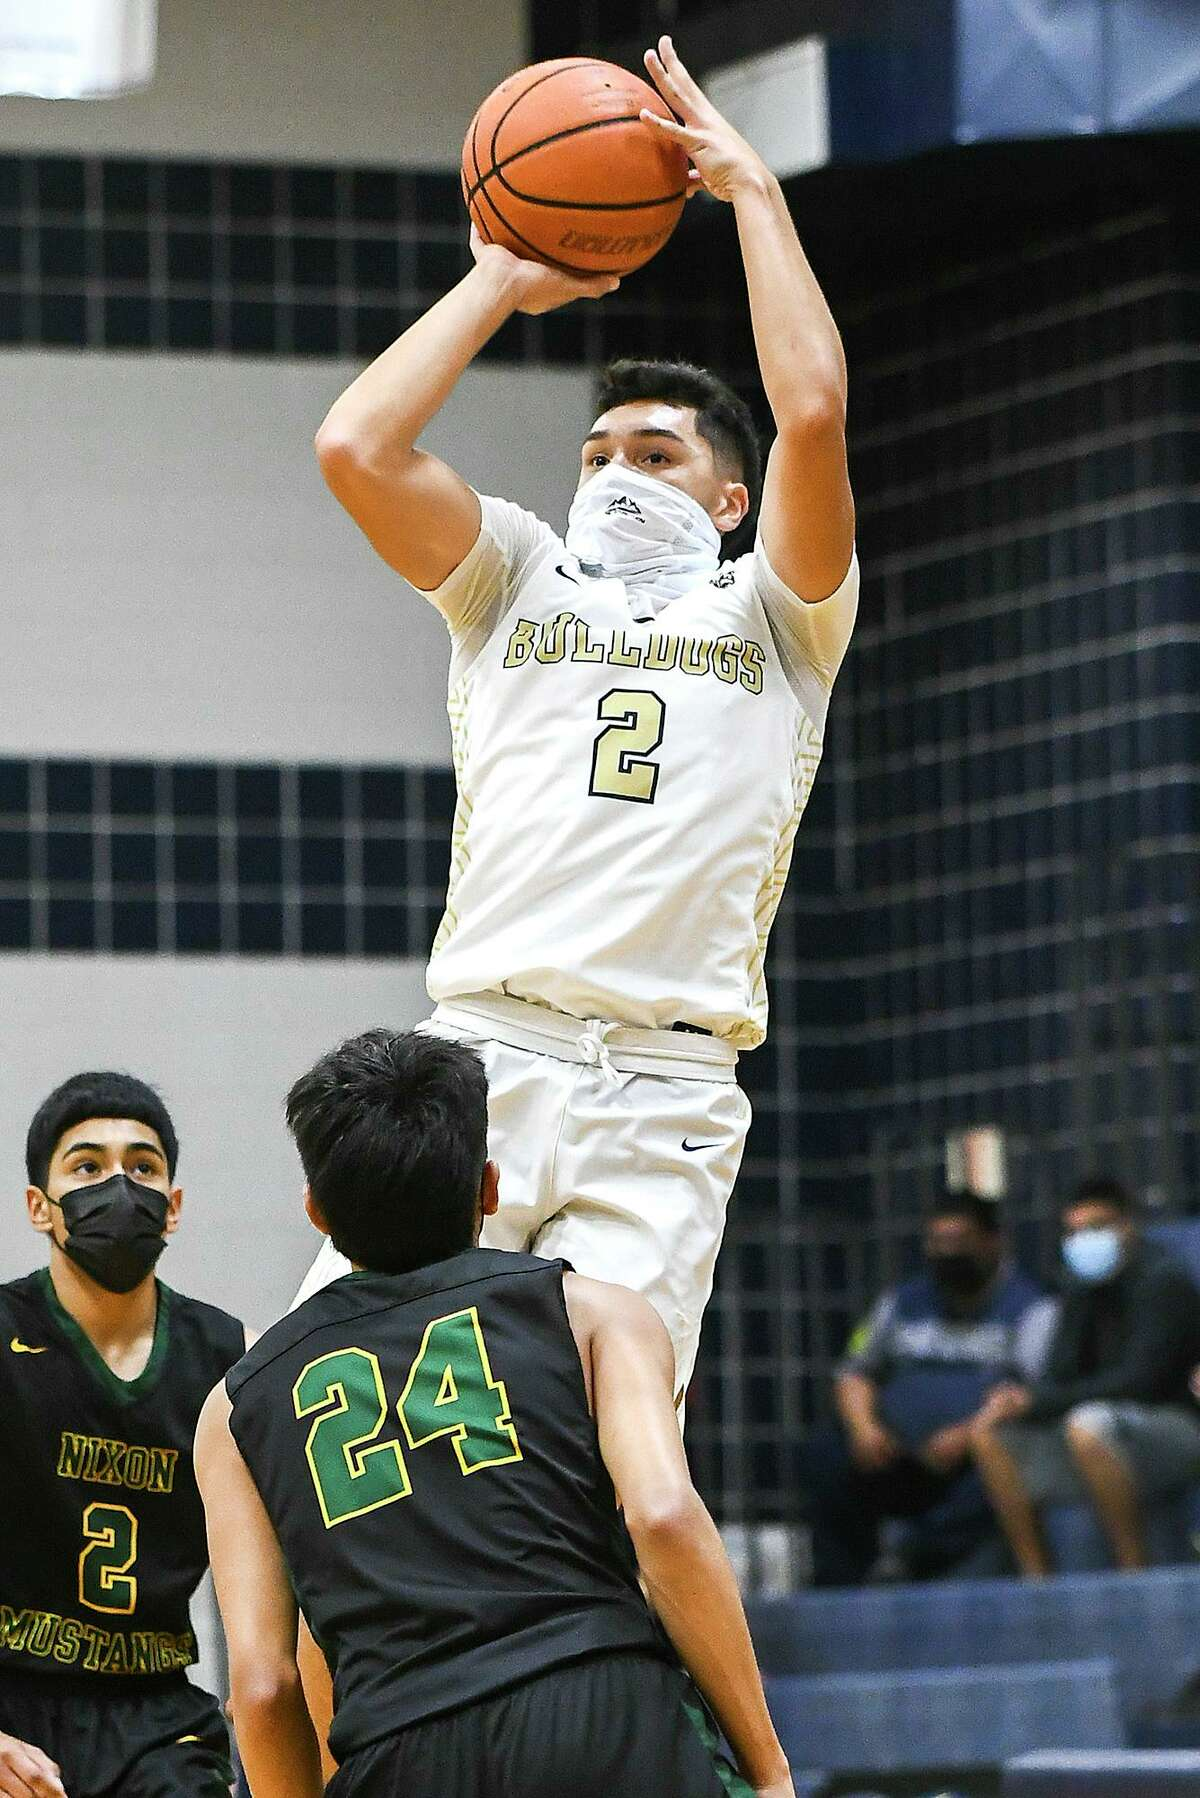 Bobby Torres averaged 14.9 points, 7.3 assists and 4.9 rebounds in his senior season at Alexander.